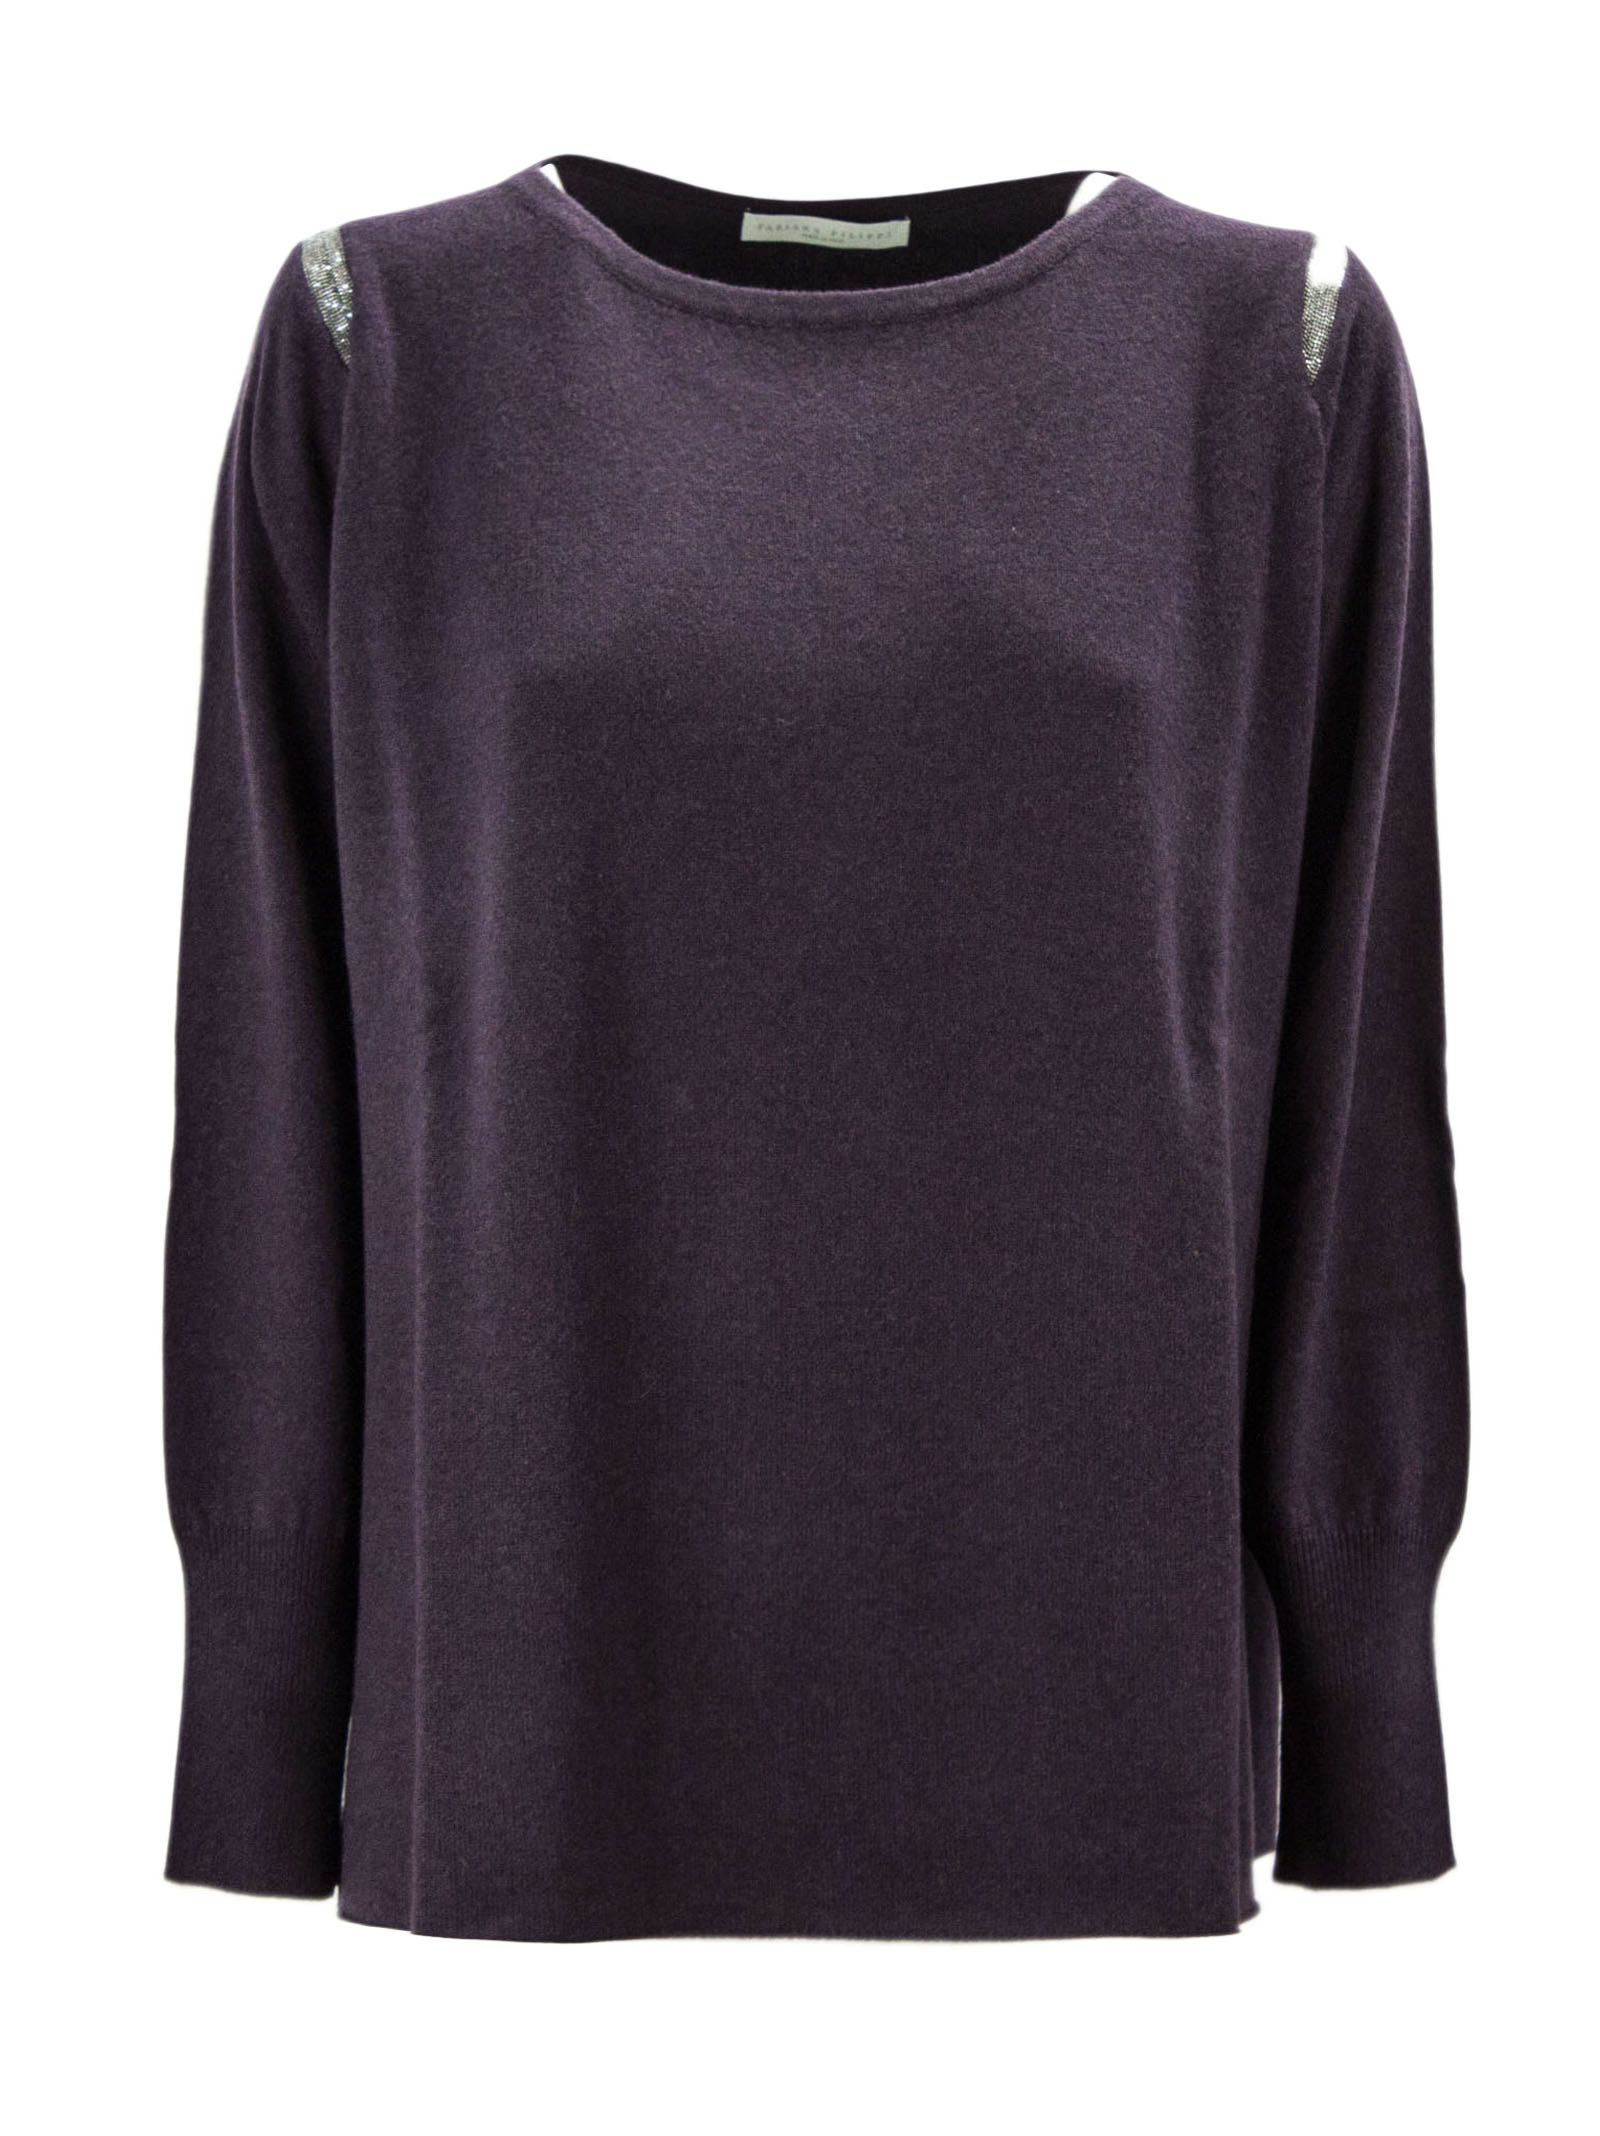 Fabiana Filippi Bordeaux Merino Wool Blend Jumper.